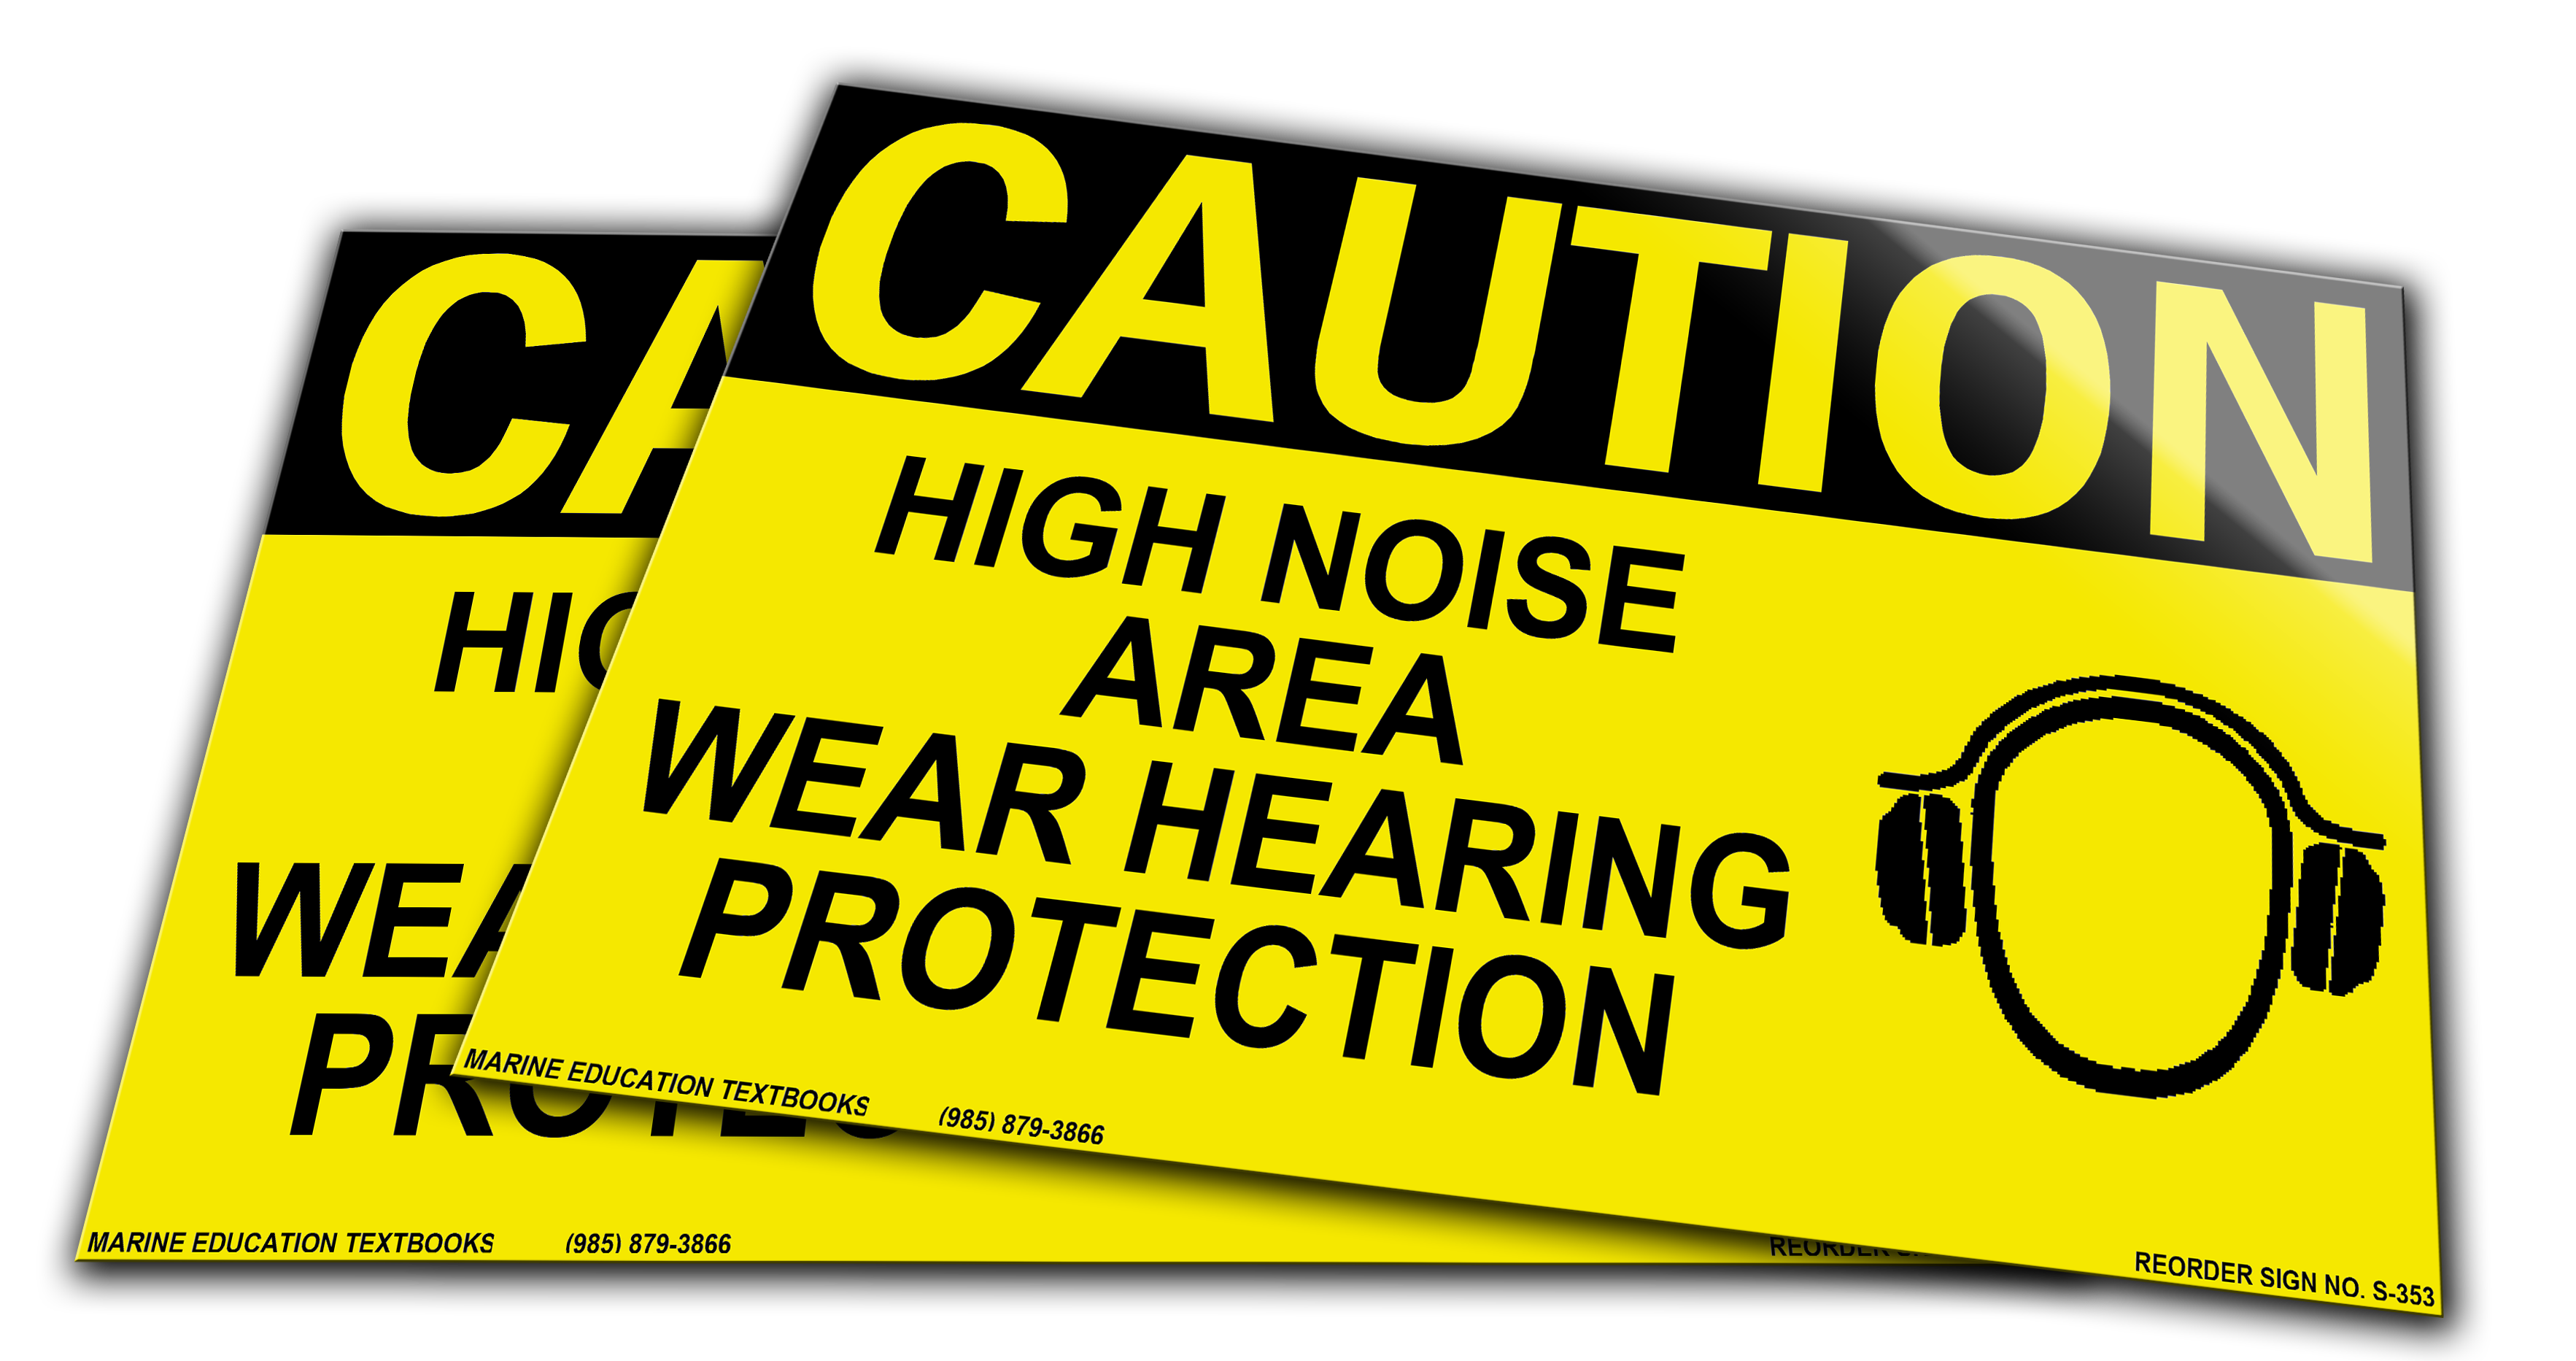 CAUTION High Noise Area Wear Hearing Protection. (10 x 7) YELLOW/BLACK W/Picture